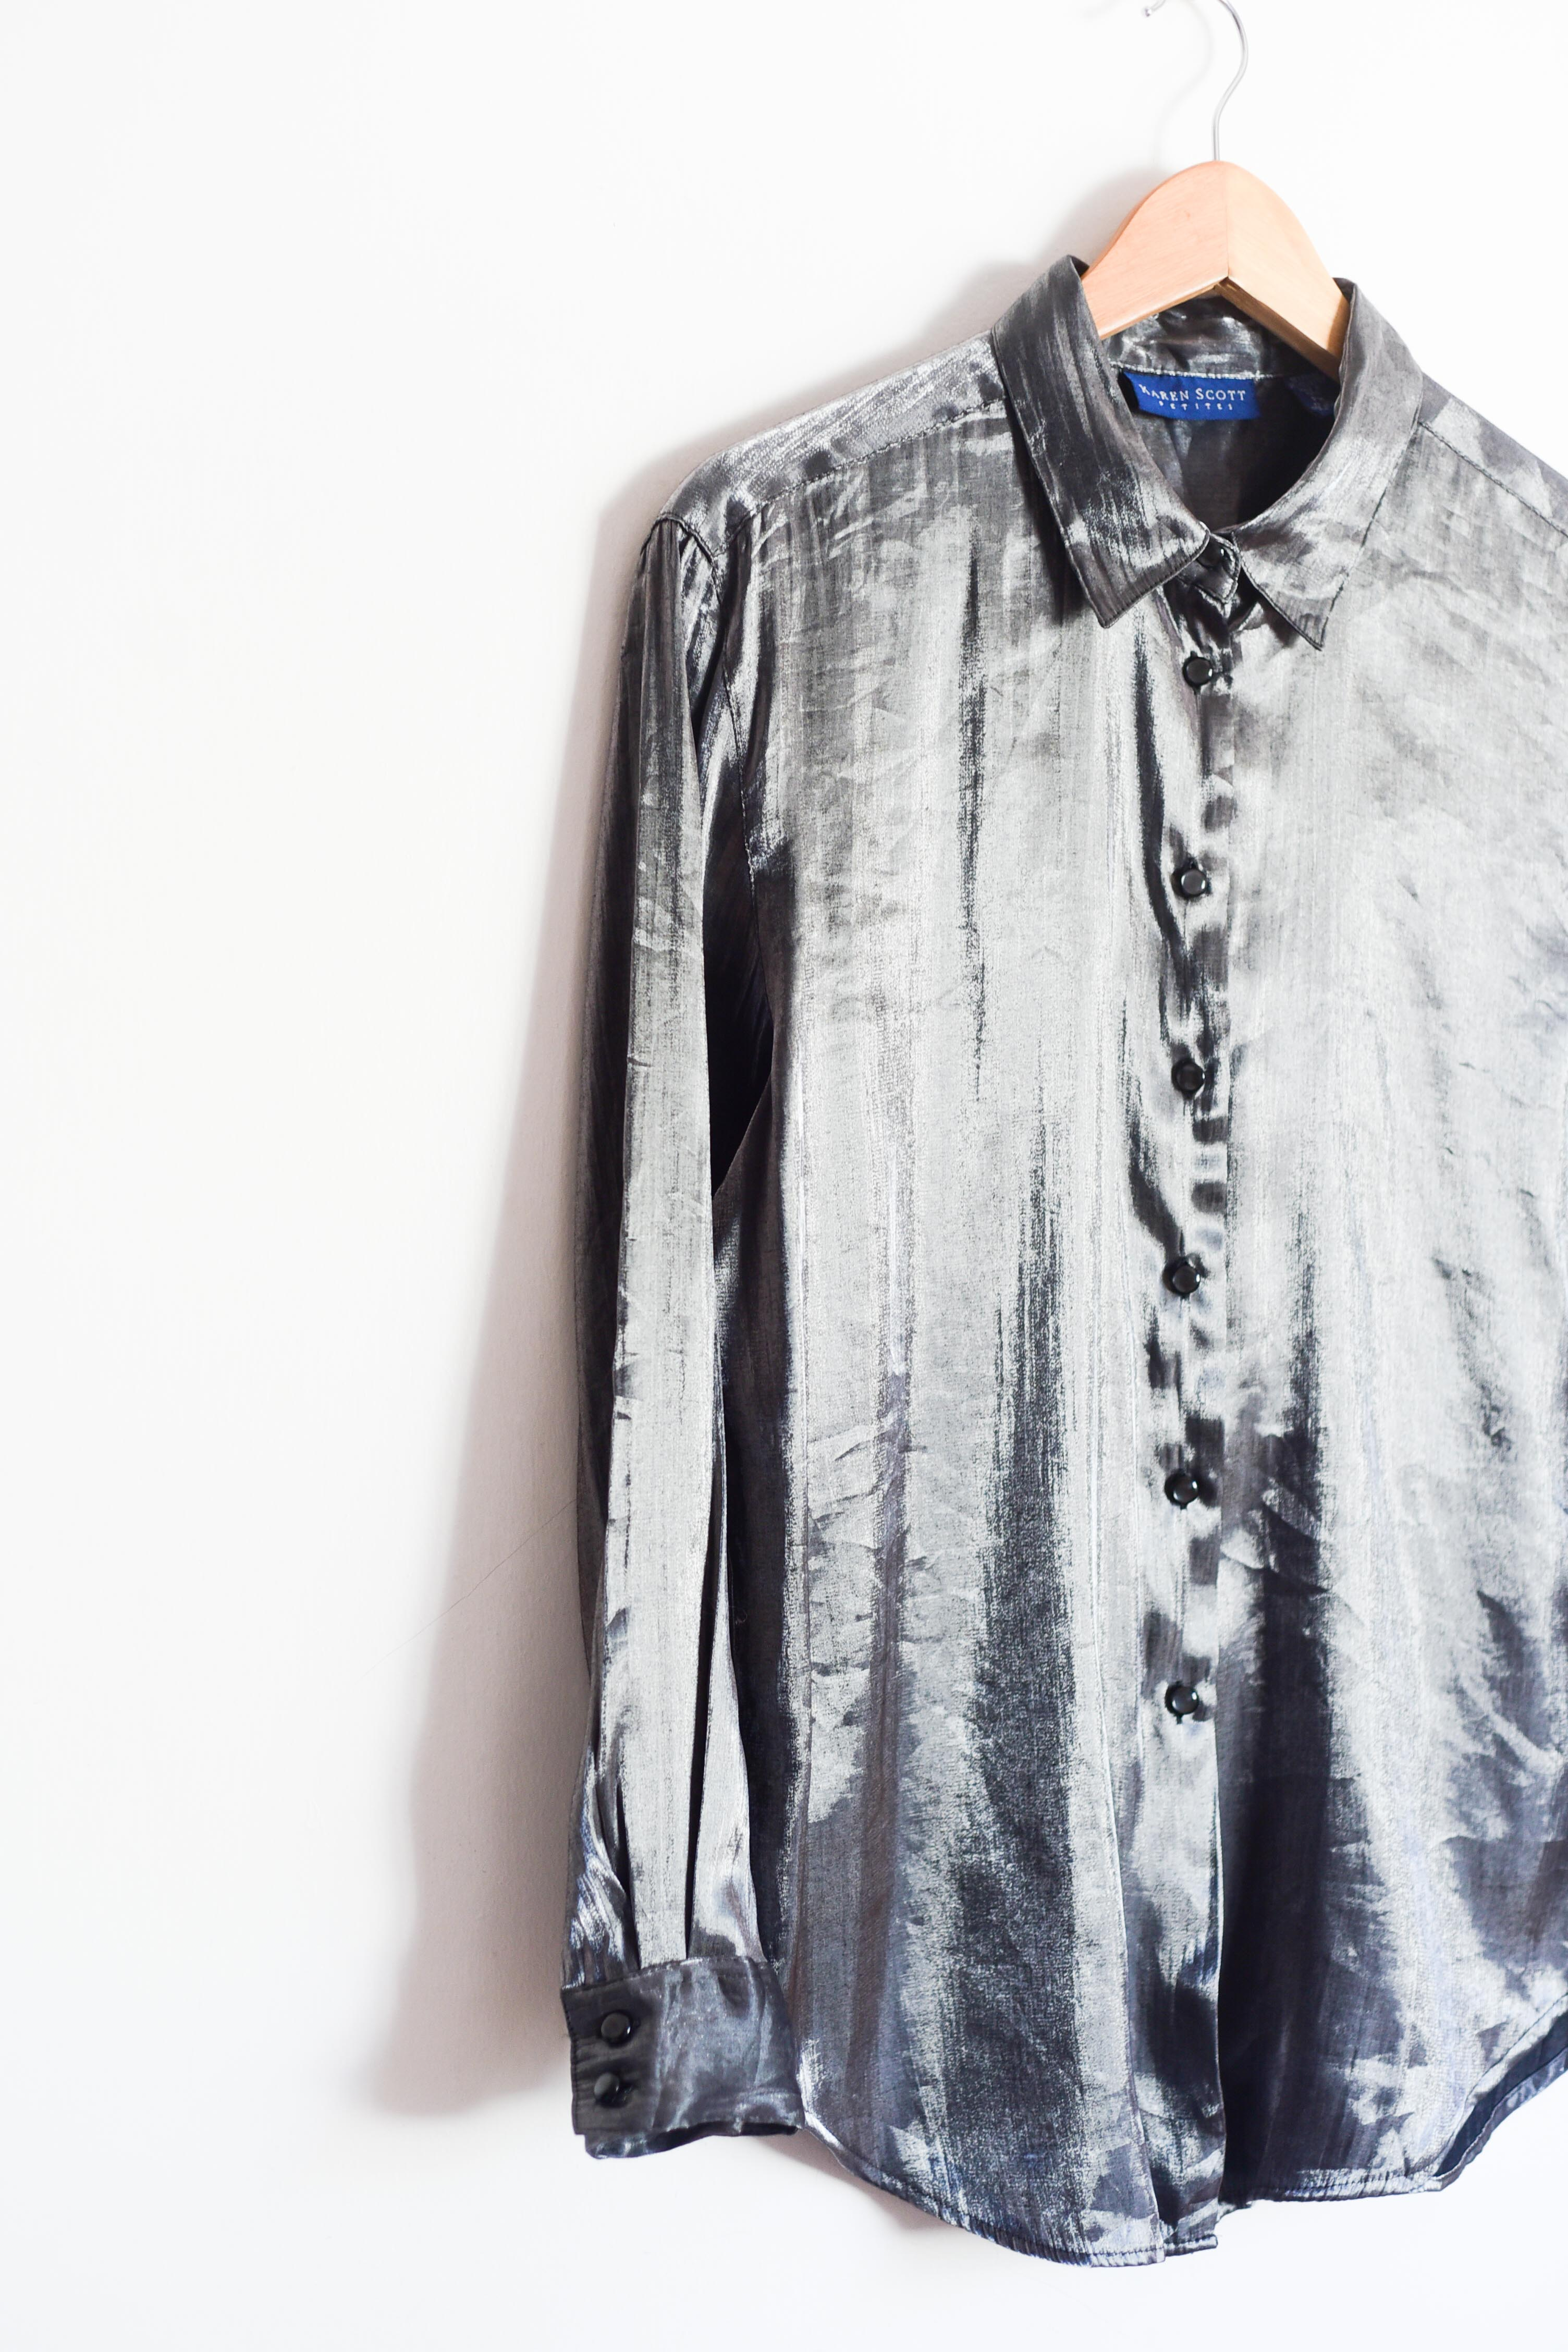 Camisa silver vo.2